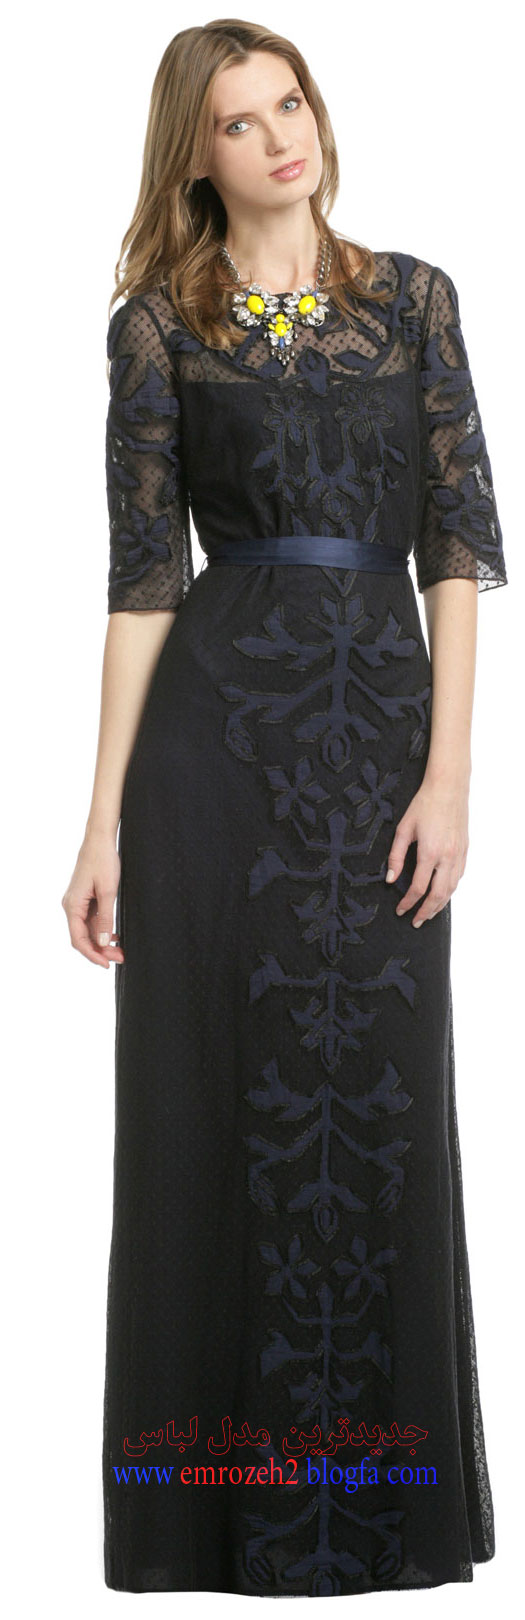 http://s2.picofile.com/file/7949250107/dress_alice_by_temperley_in_honor_gown.jpg